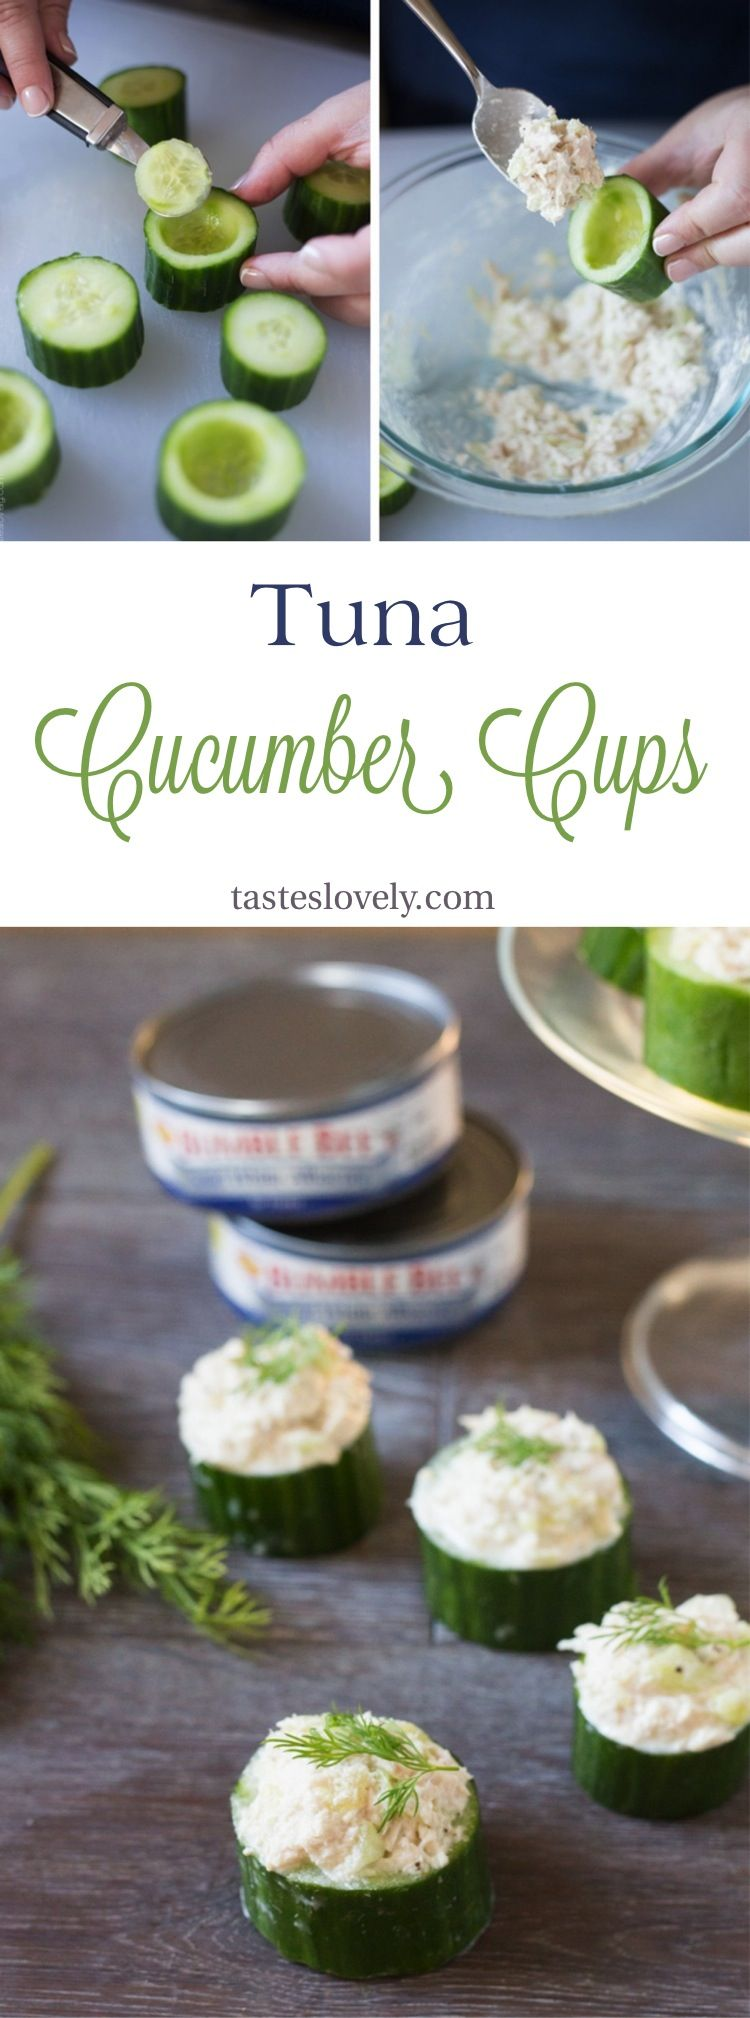 Lightly salted cucumber in a package - the best snack for a fun company